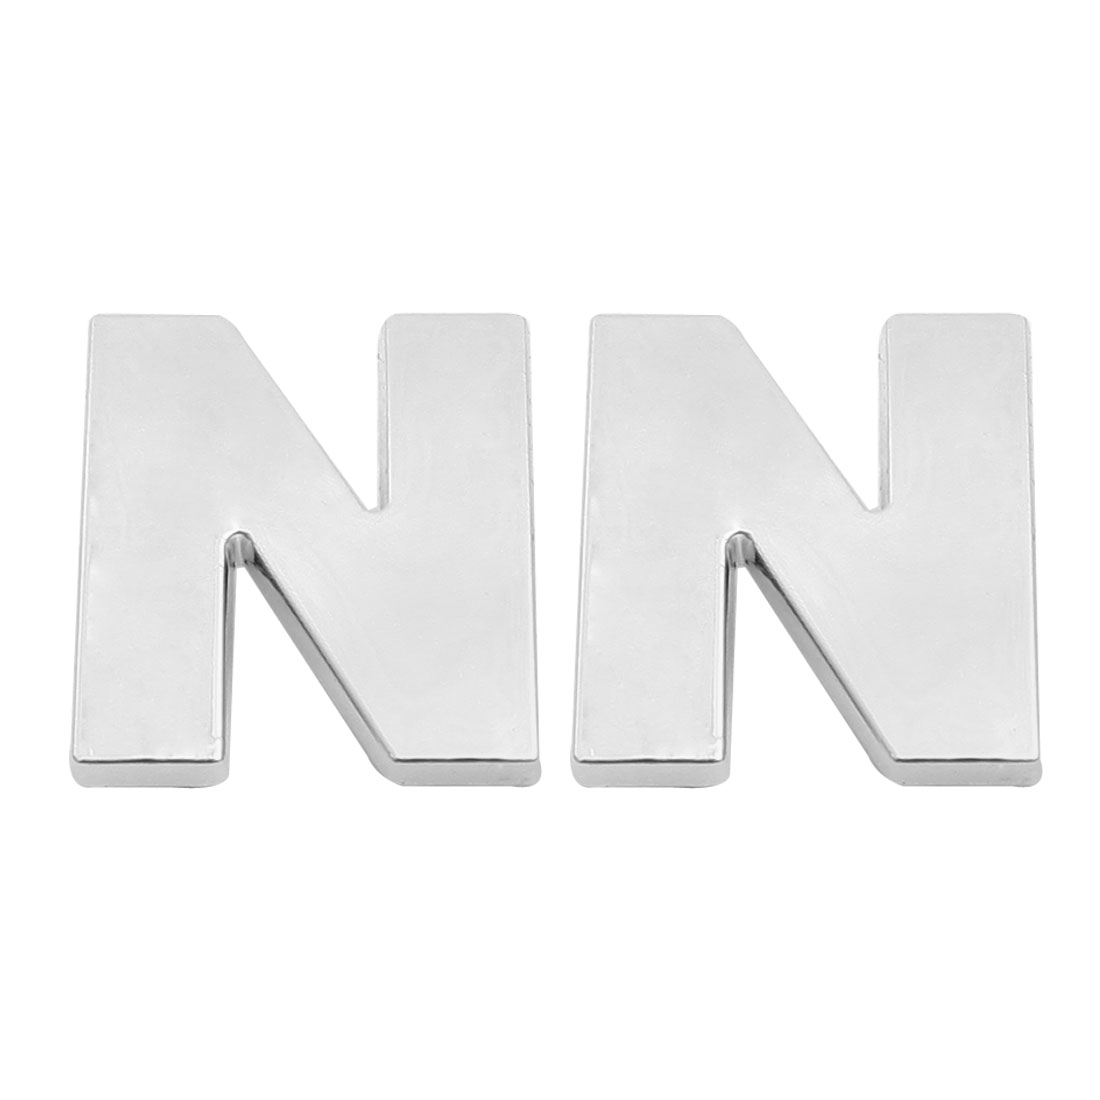 Car Vehicle Hood Trunk Letter N 3D Emblem Sticker Silver Tone 2 Pcs